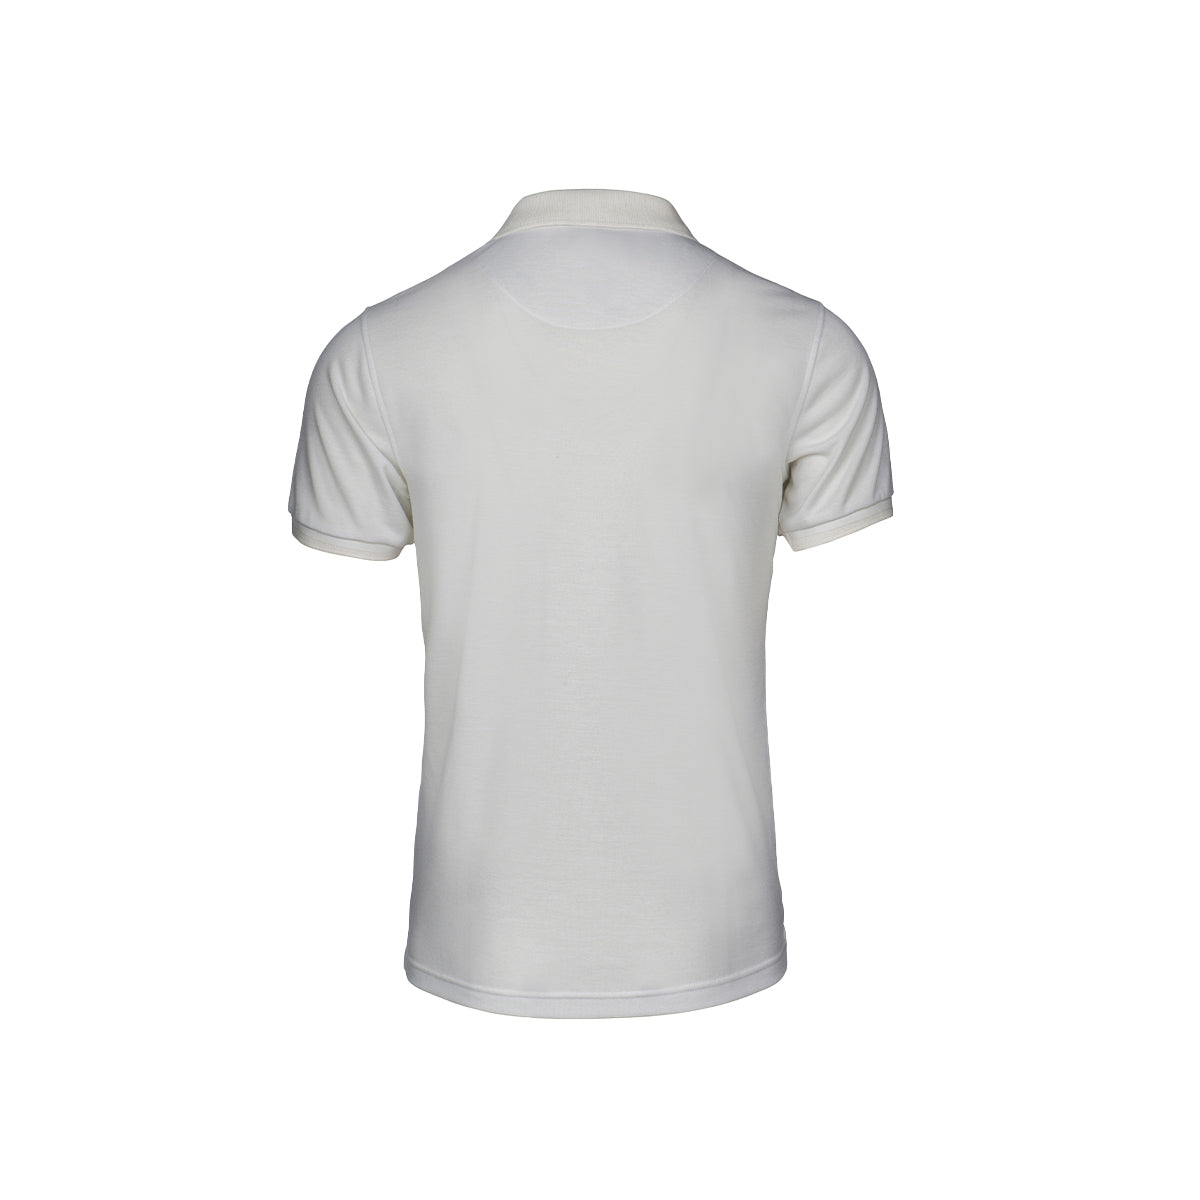 Falesia Polo - background::white,variant::white